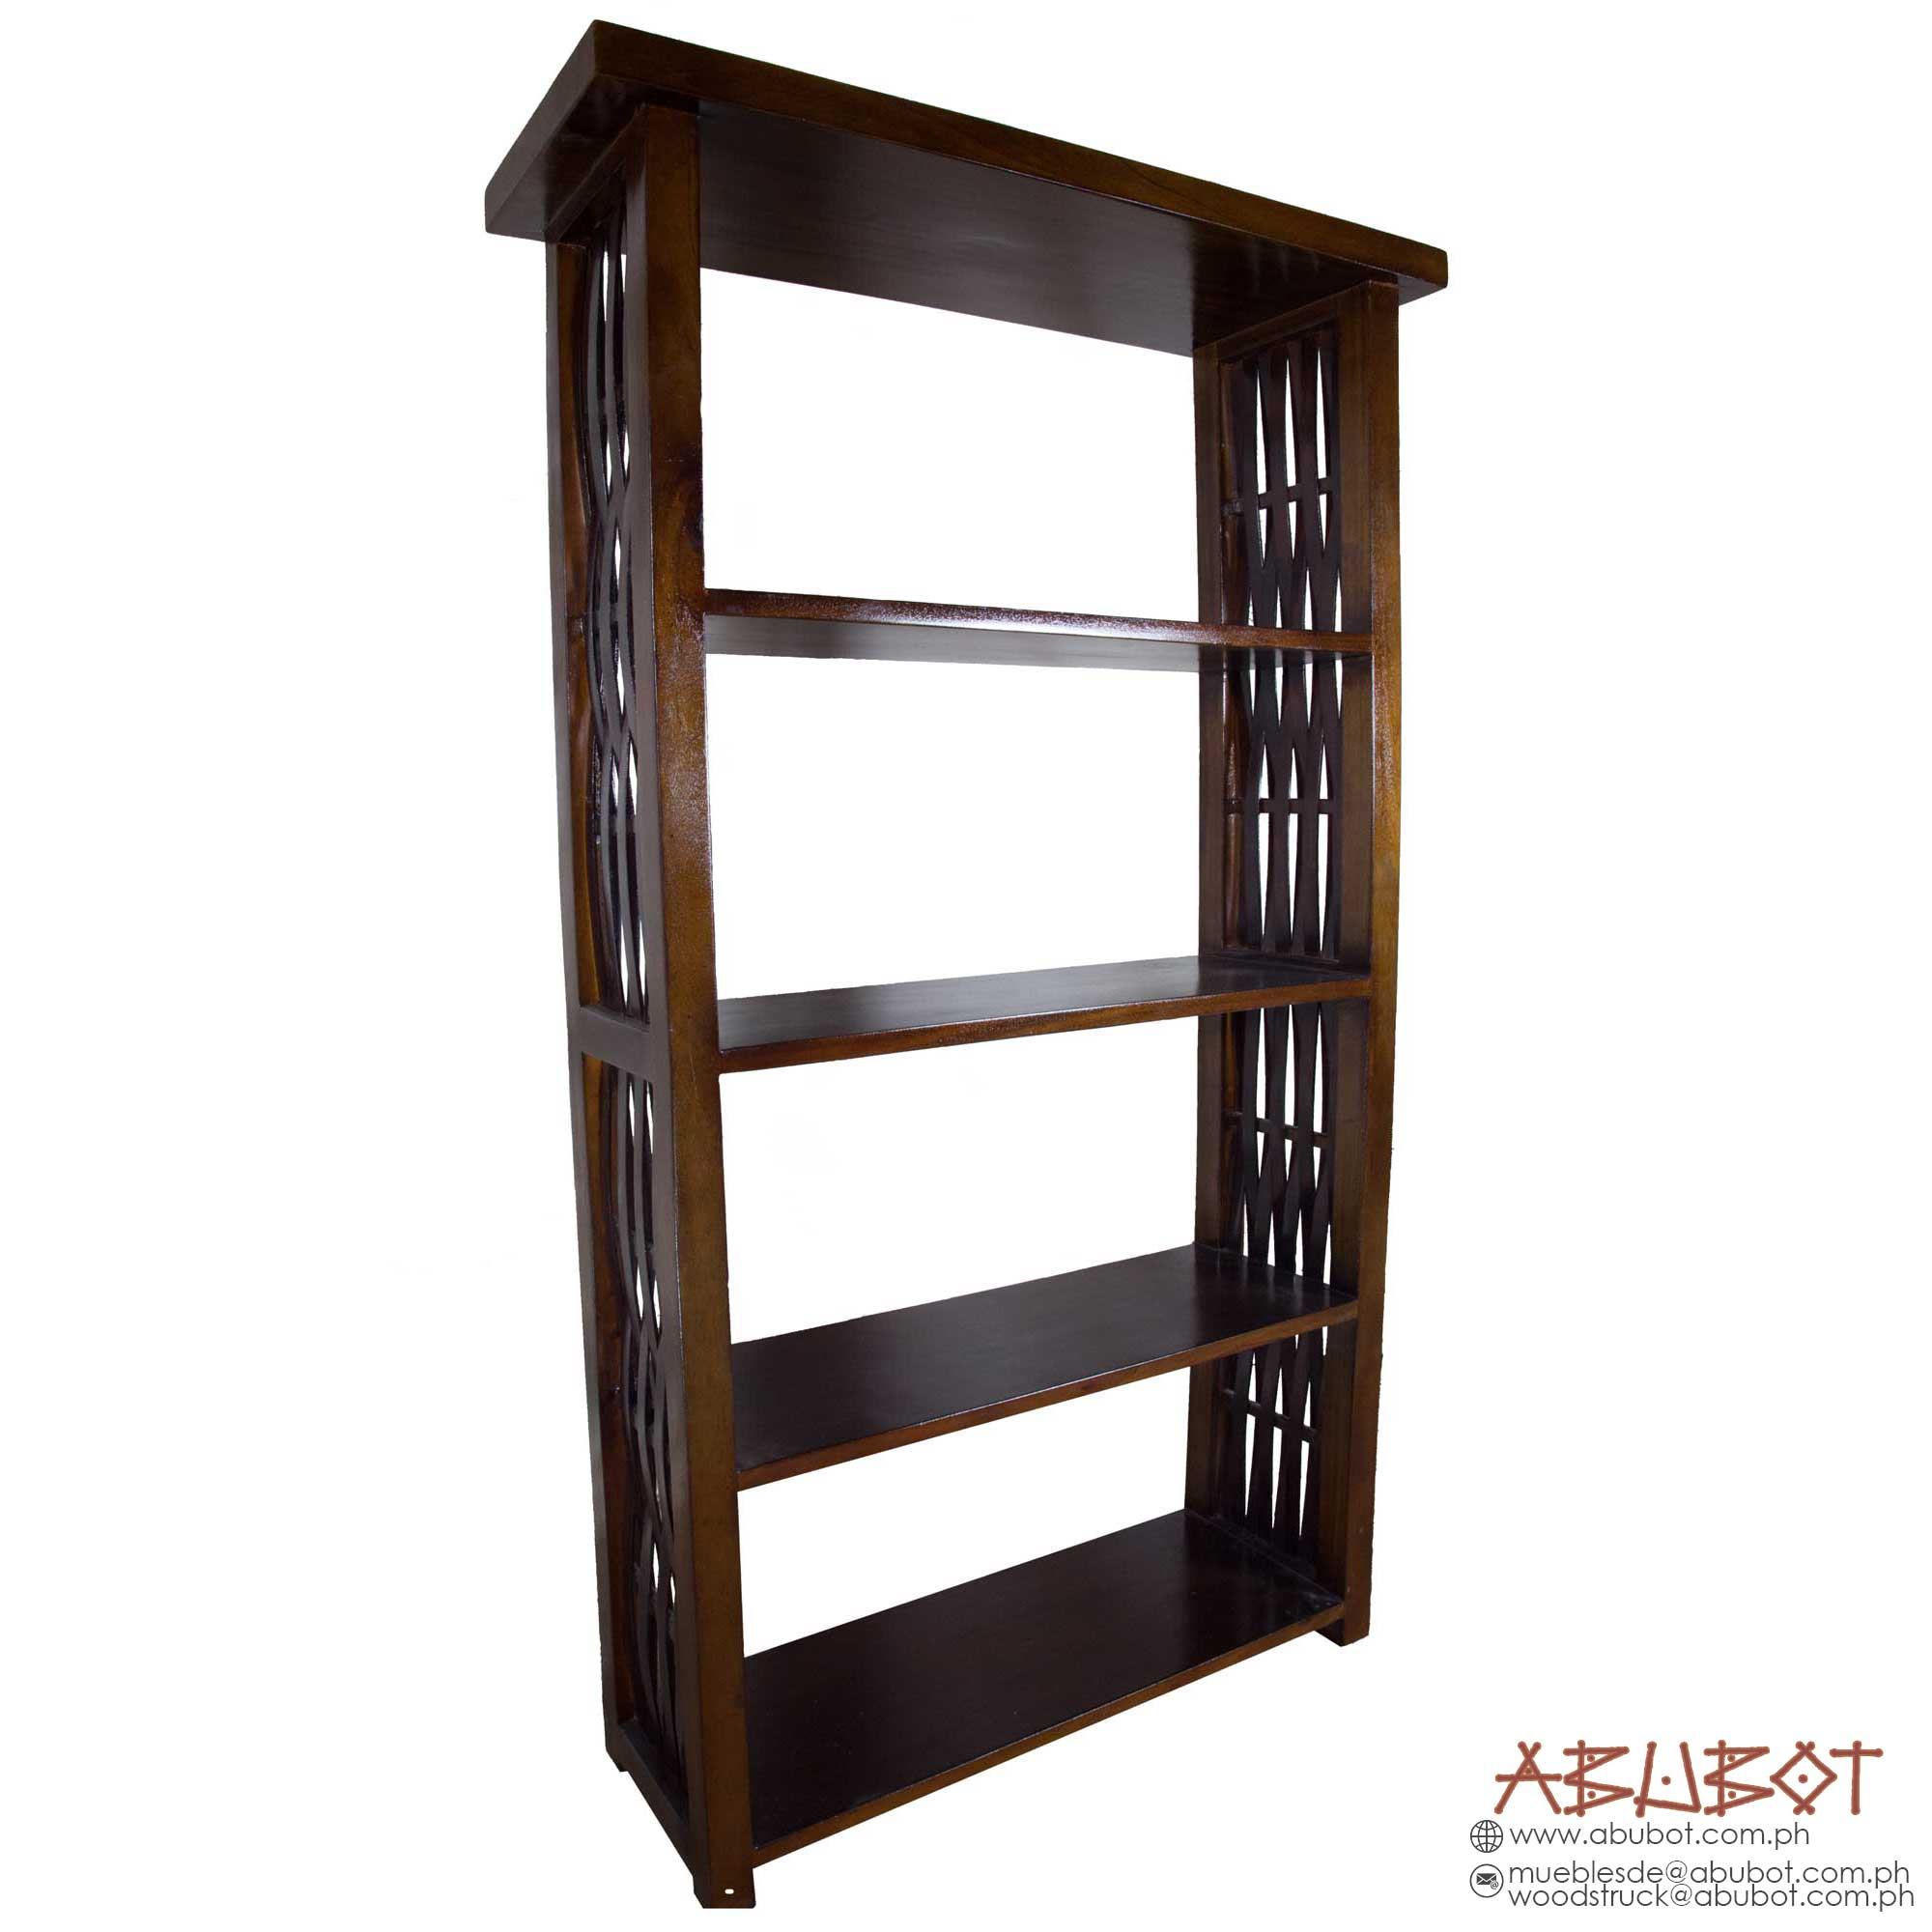 Regular Open Shelves 6ft